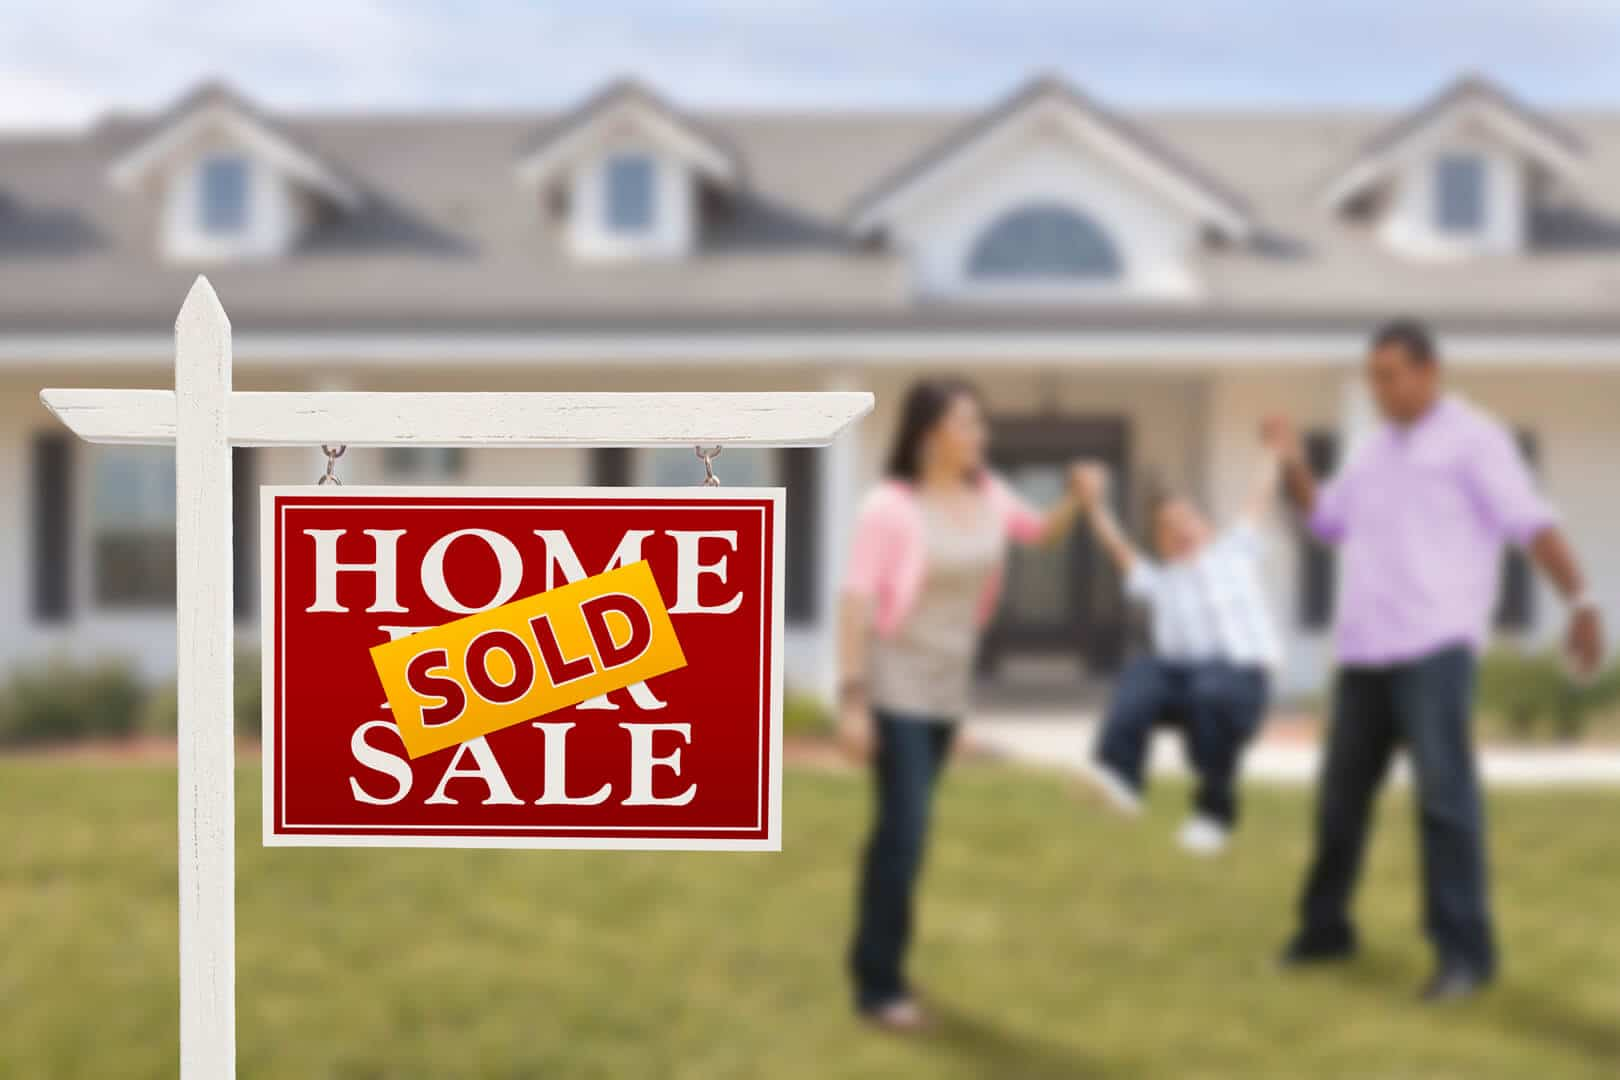 home-sold-va-house-purchase-loan-family